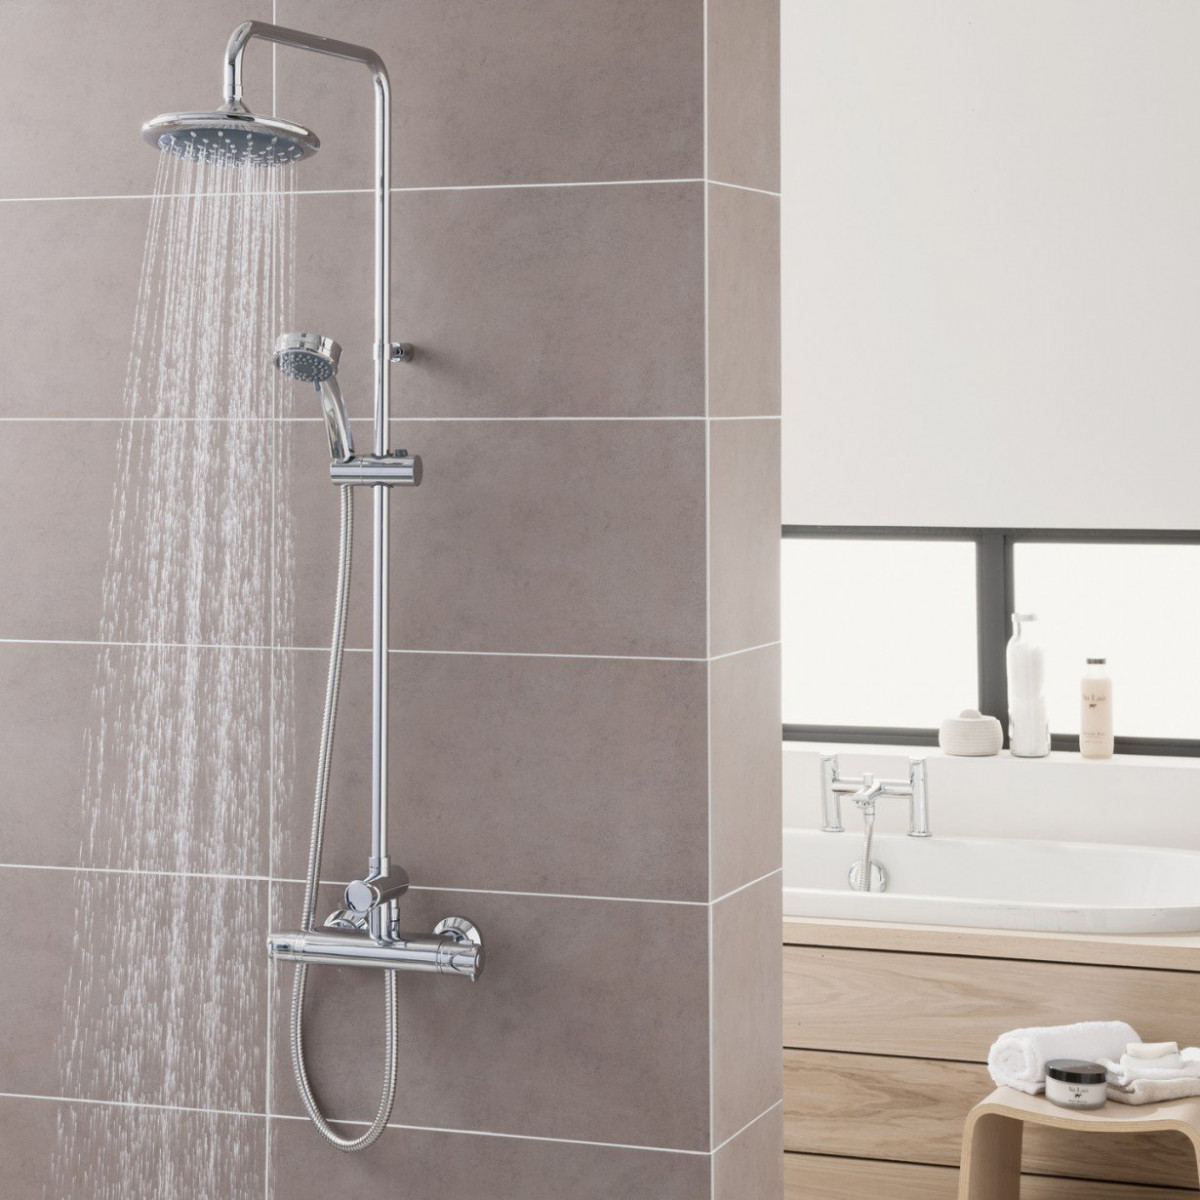 What Is A Shower Diverter Mixer